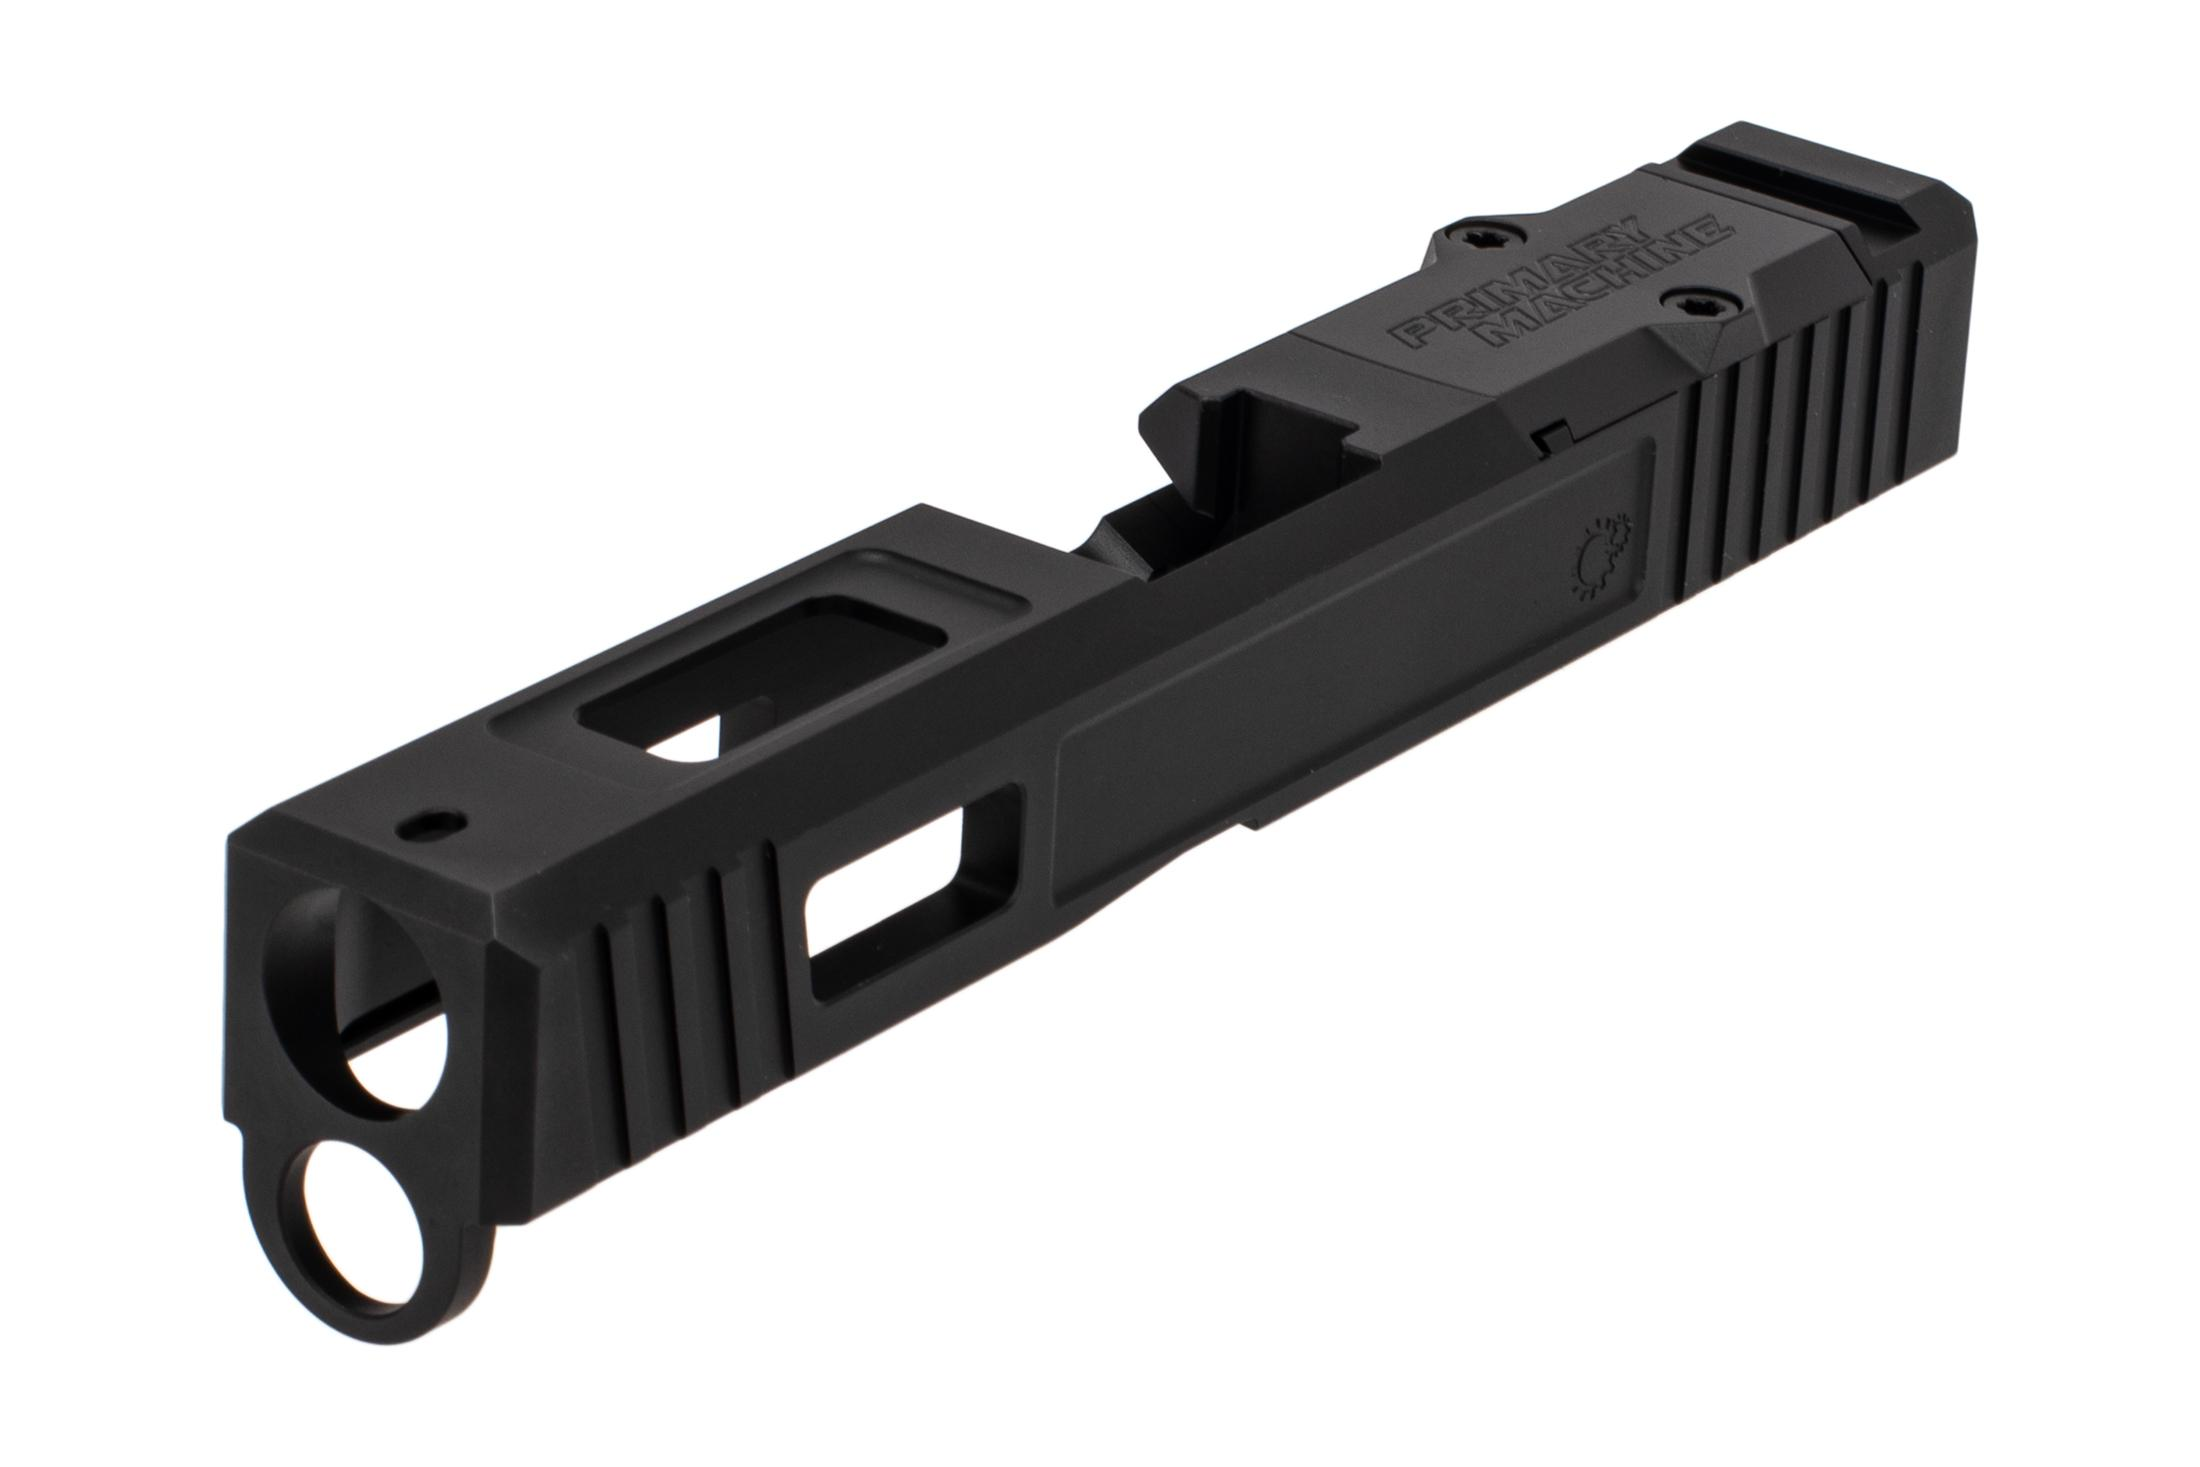 The Primary Machine Glock 19 stripped slide gen 4 features a black Nitride finish